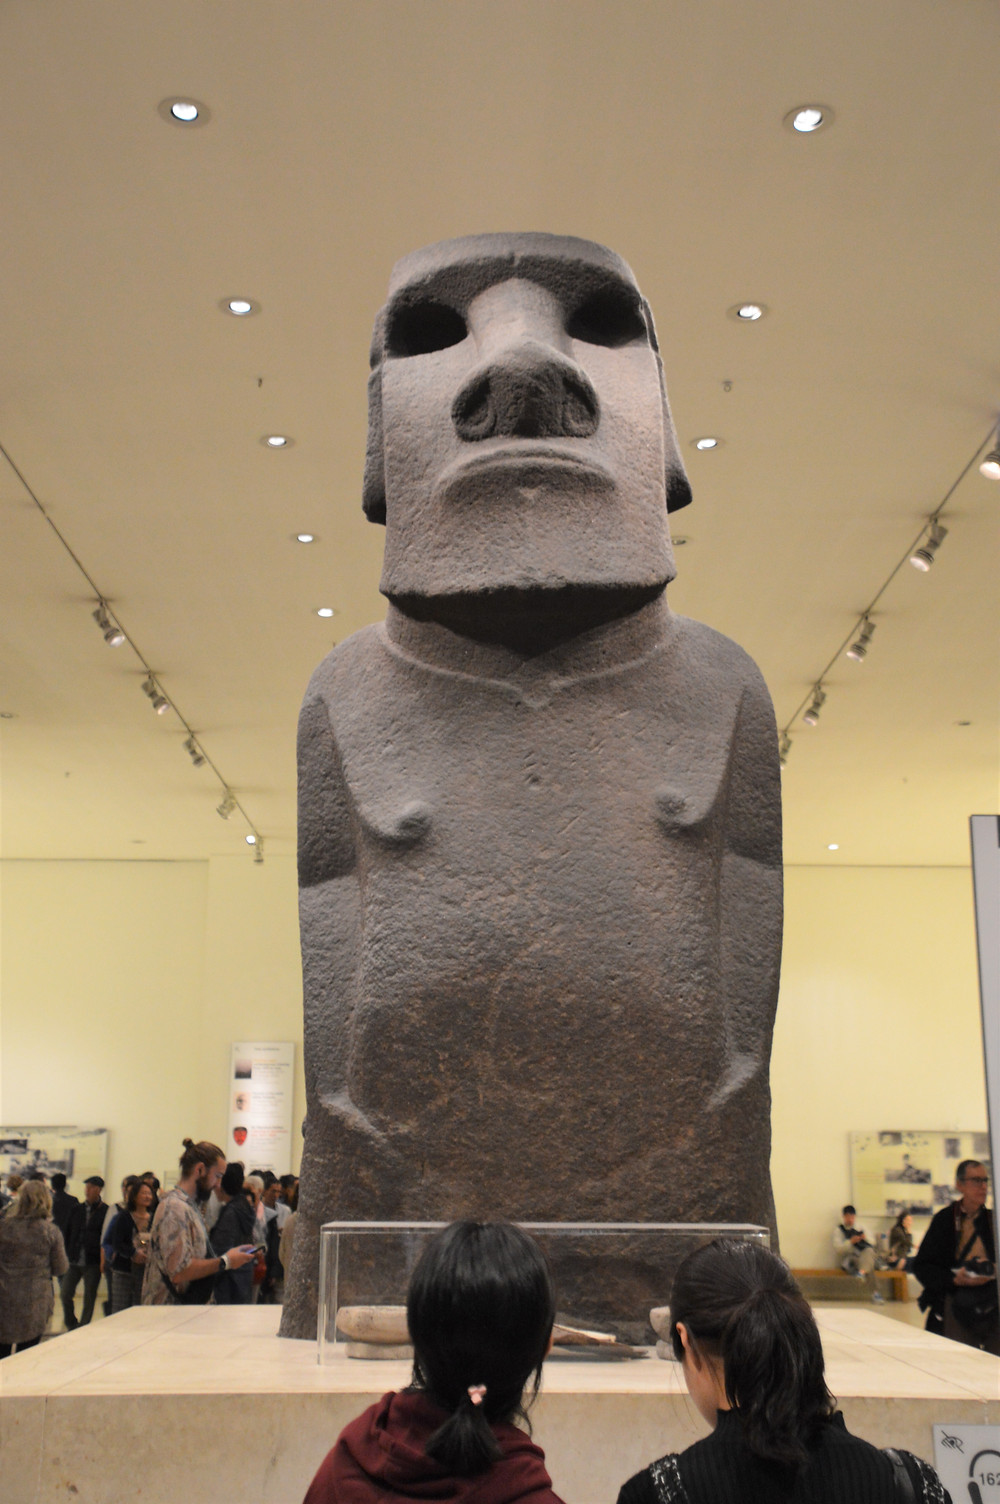 On display in The British Museum Hoa Hakananai'a a moai statue carved by the Rapa Nui people of Easter Island between the years 1250 and 1500